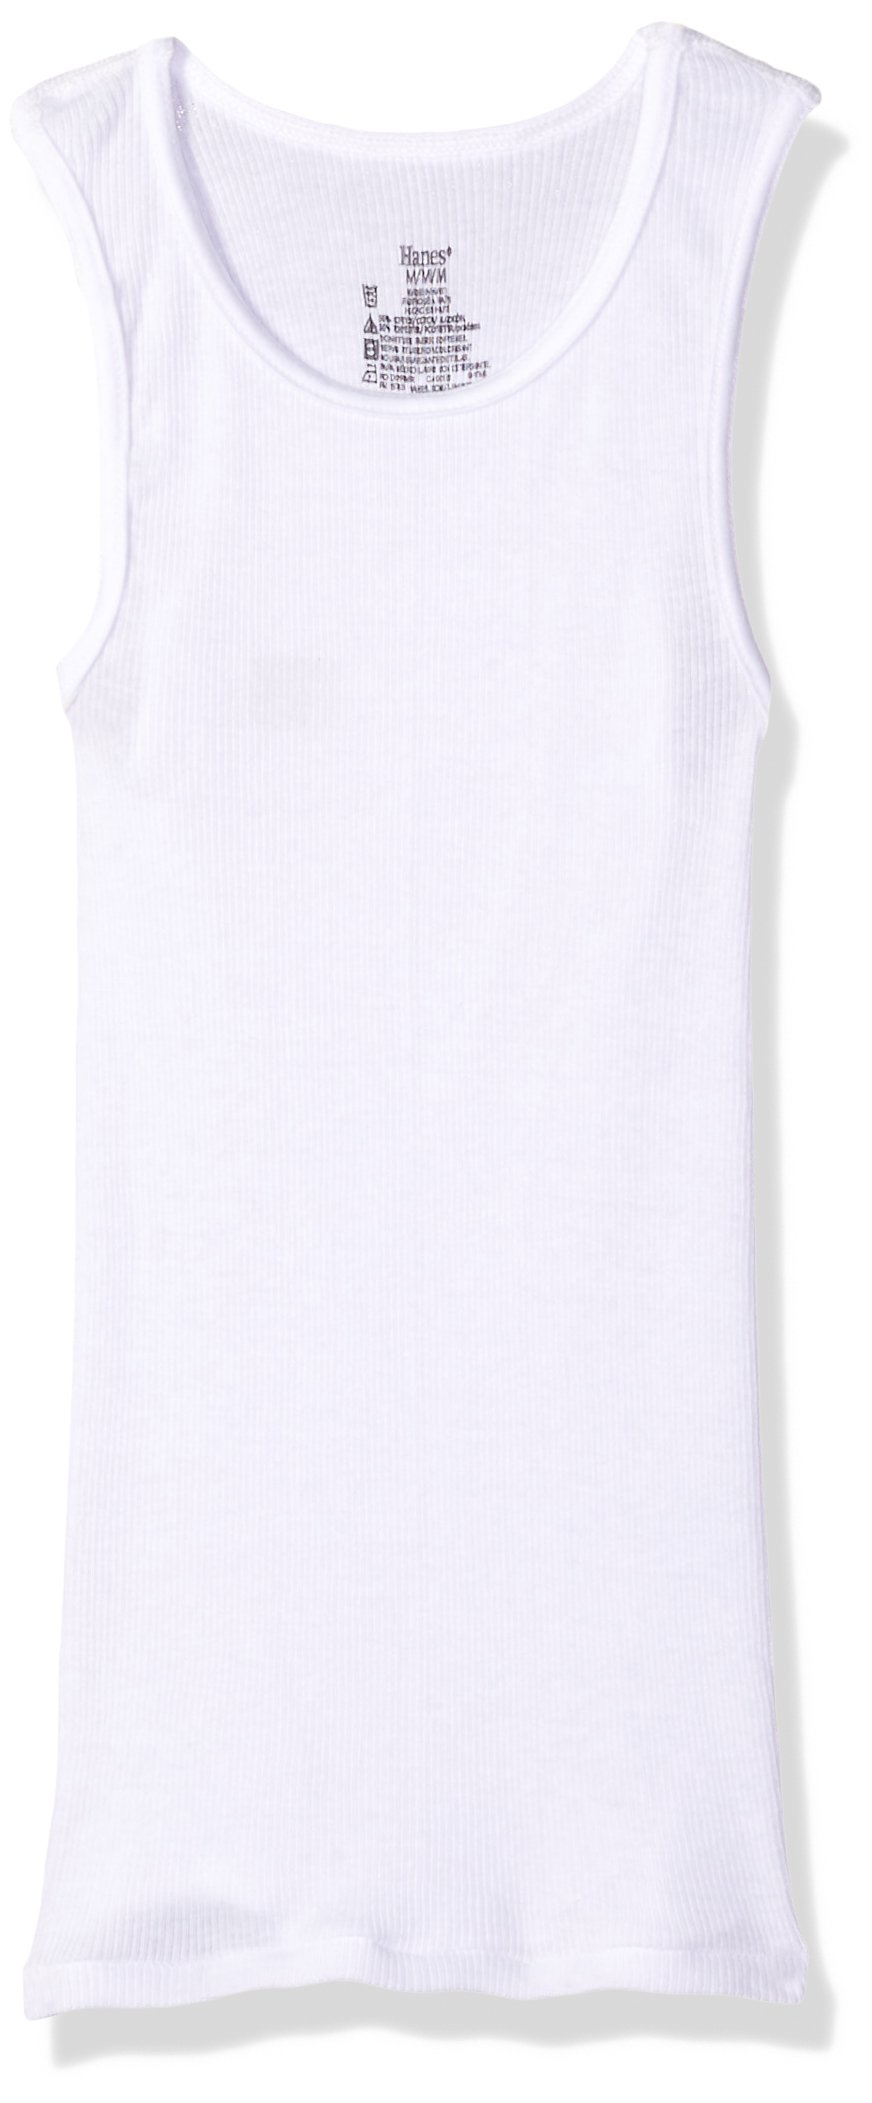 Hanes Boys' Big Ultimate Cool Comfort Tank Undershirt 5-Pack, White, Extra Small